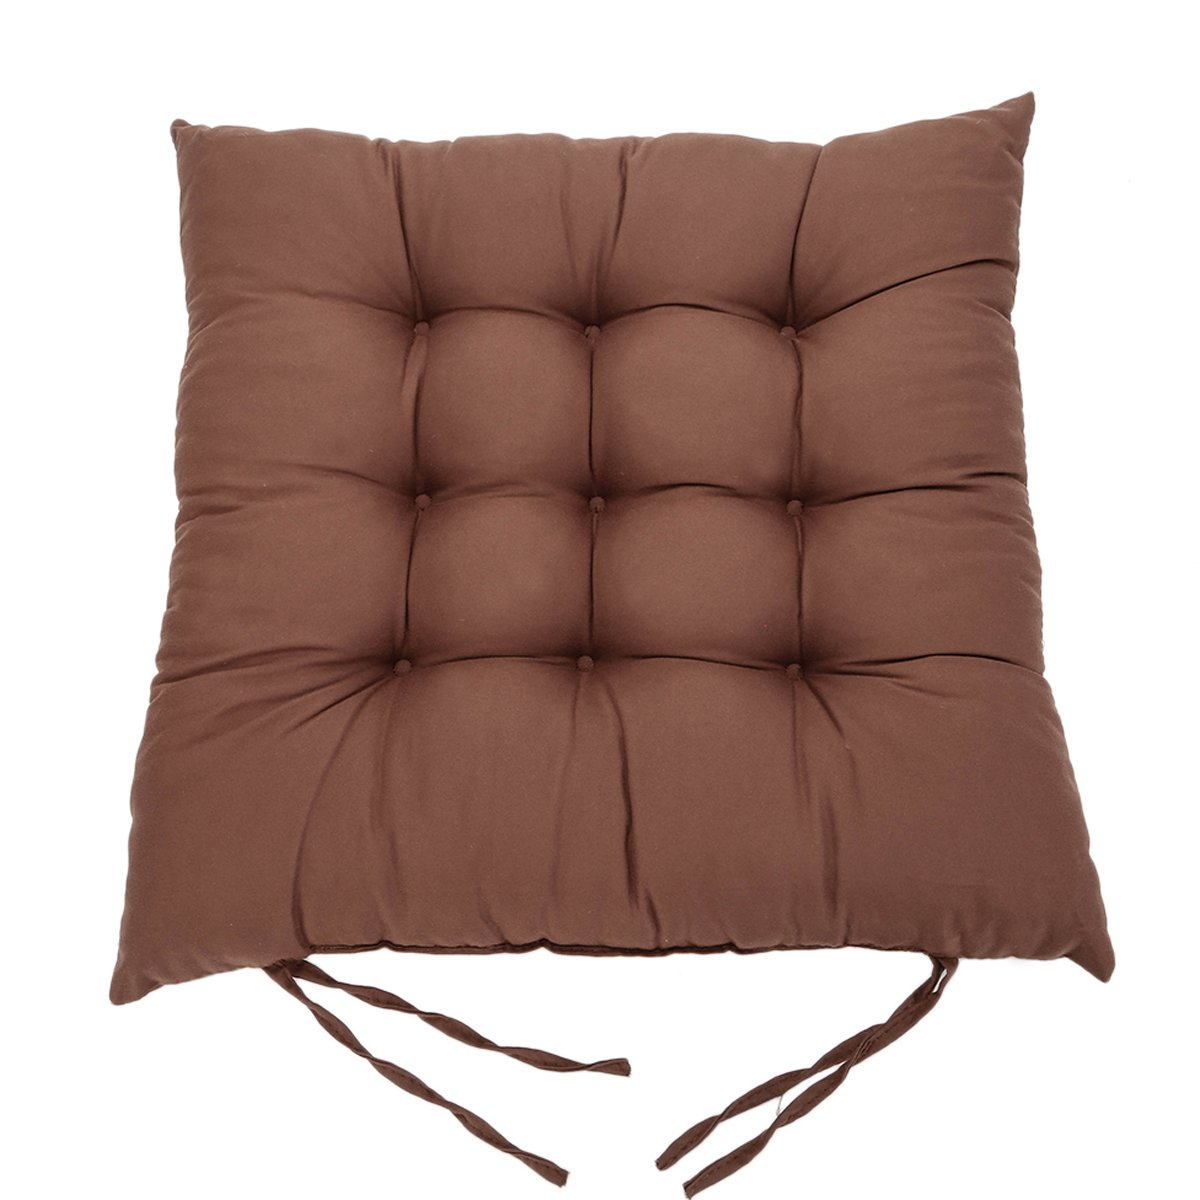 O'Abazar New dot or solid color Soft Home Office Decoration Square Buttocks Seat Chair Cushion Pads Pillow (Brown) O'Abazar